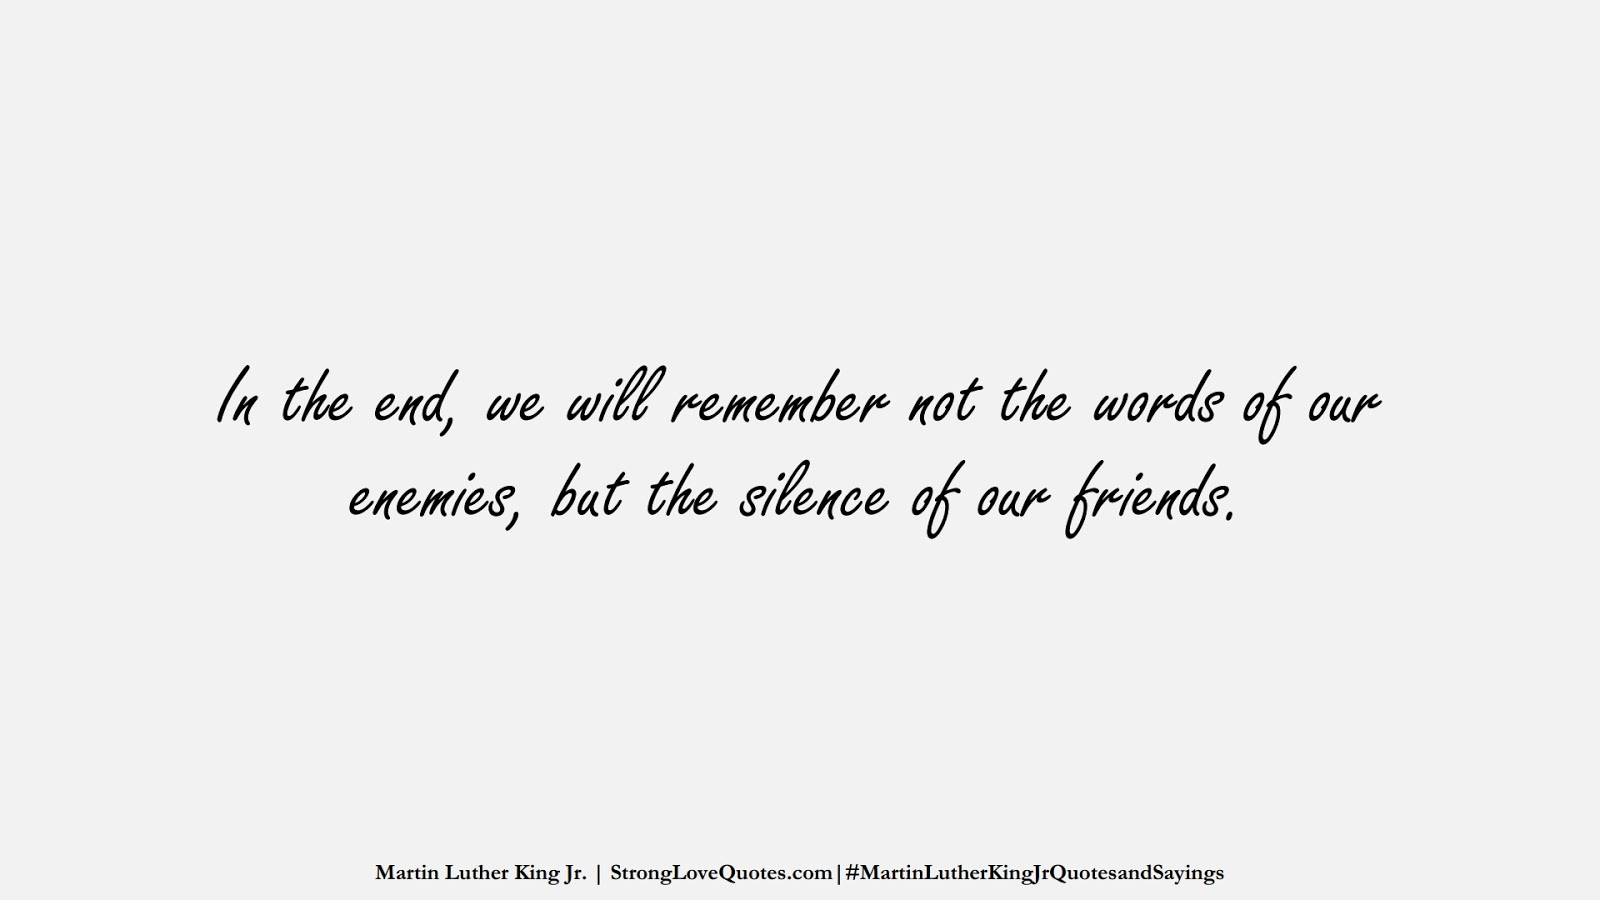 In the end, we will remember not the words of our enemies, but the silence of our friends. (Martin Luther King Jr.);  #MartinLutherKingJrQuotesandSayings